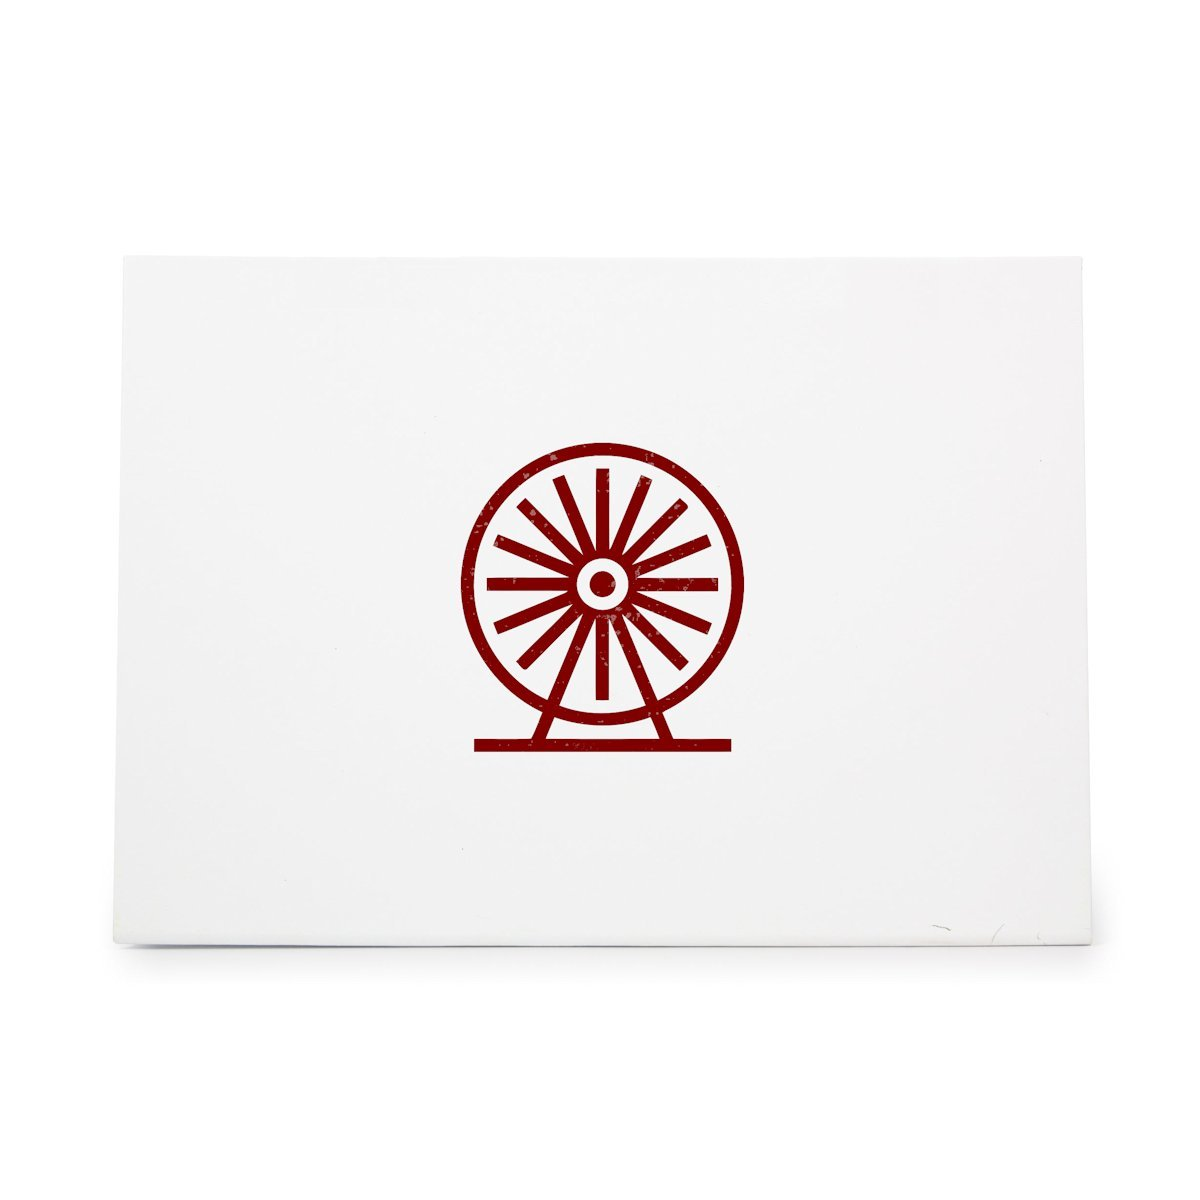 Ink Stamping Crafts Card Making Rubber Stamp Shape great for Scrapbooking Crafts Ferris Wheel Big Carnival Observation Style 9911